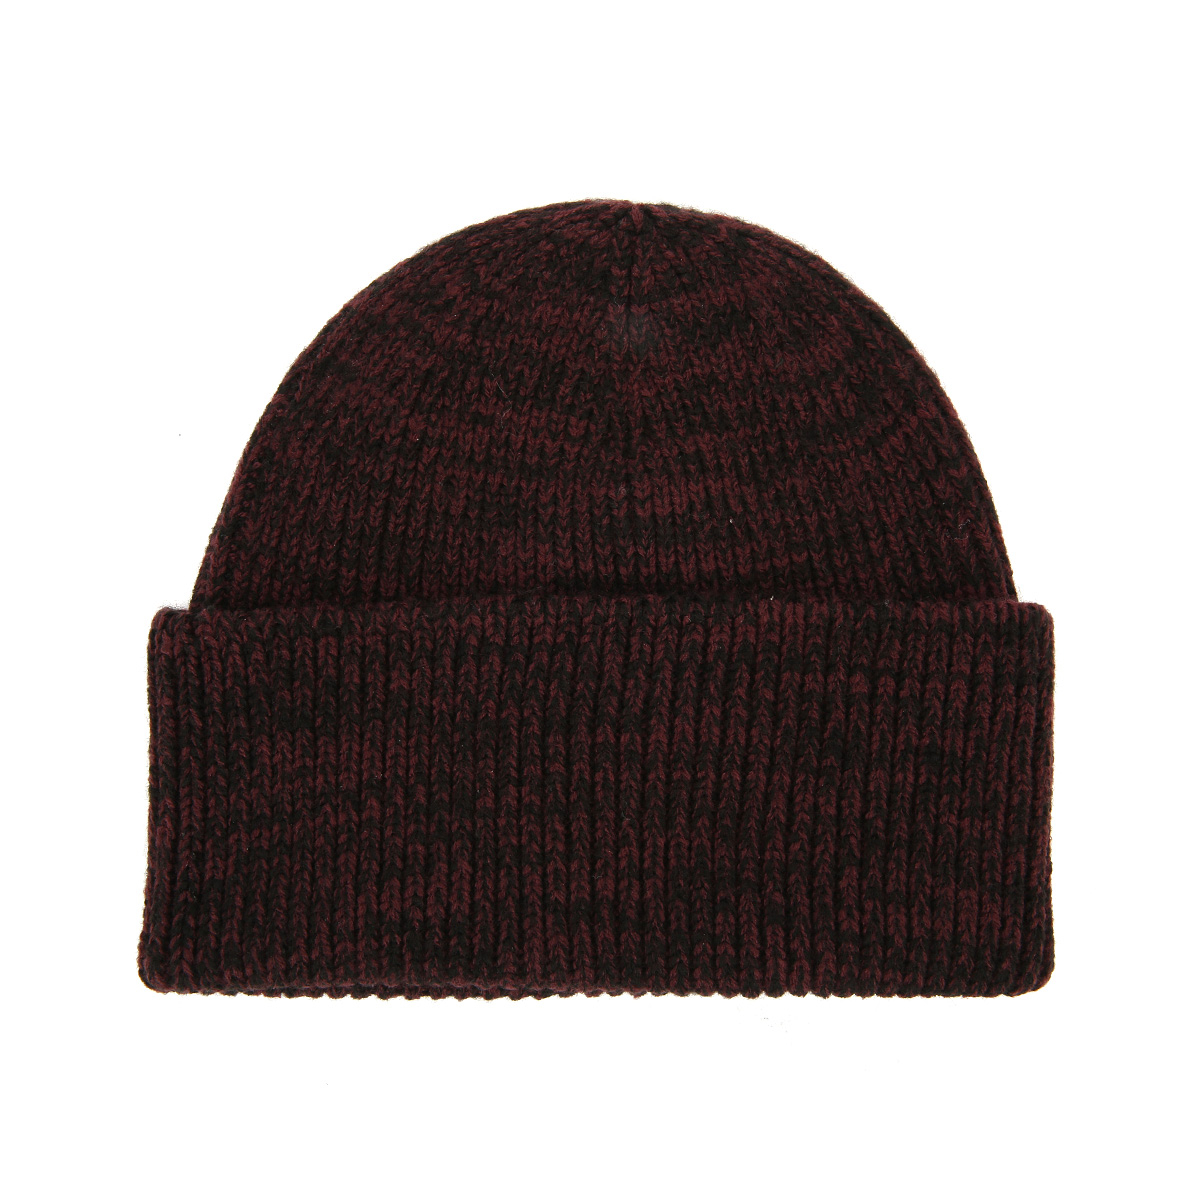 Details about New Balance Burgundy Red Watchmans Beanie Unisex Warm Winter  Hat f6dde2f9d61